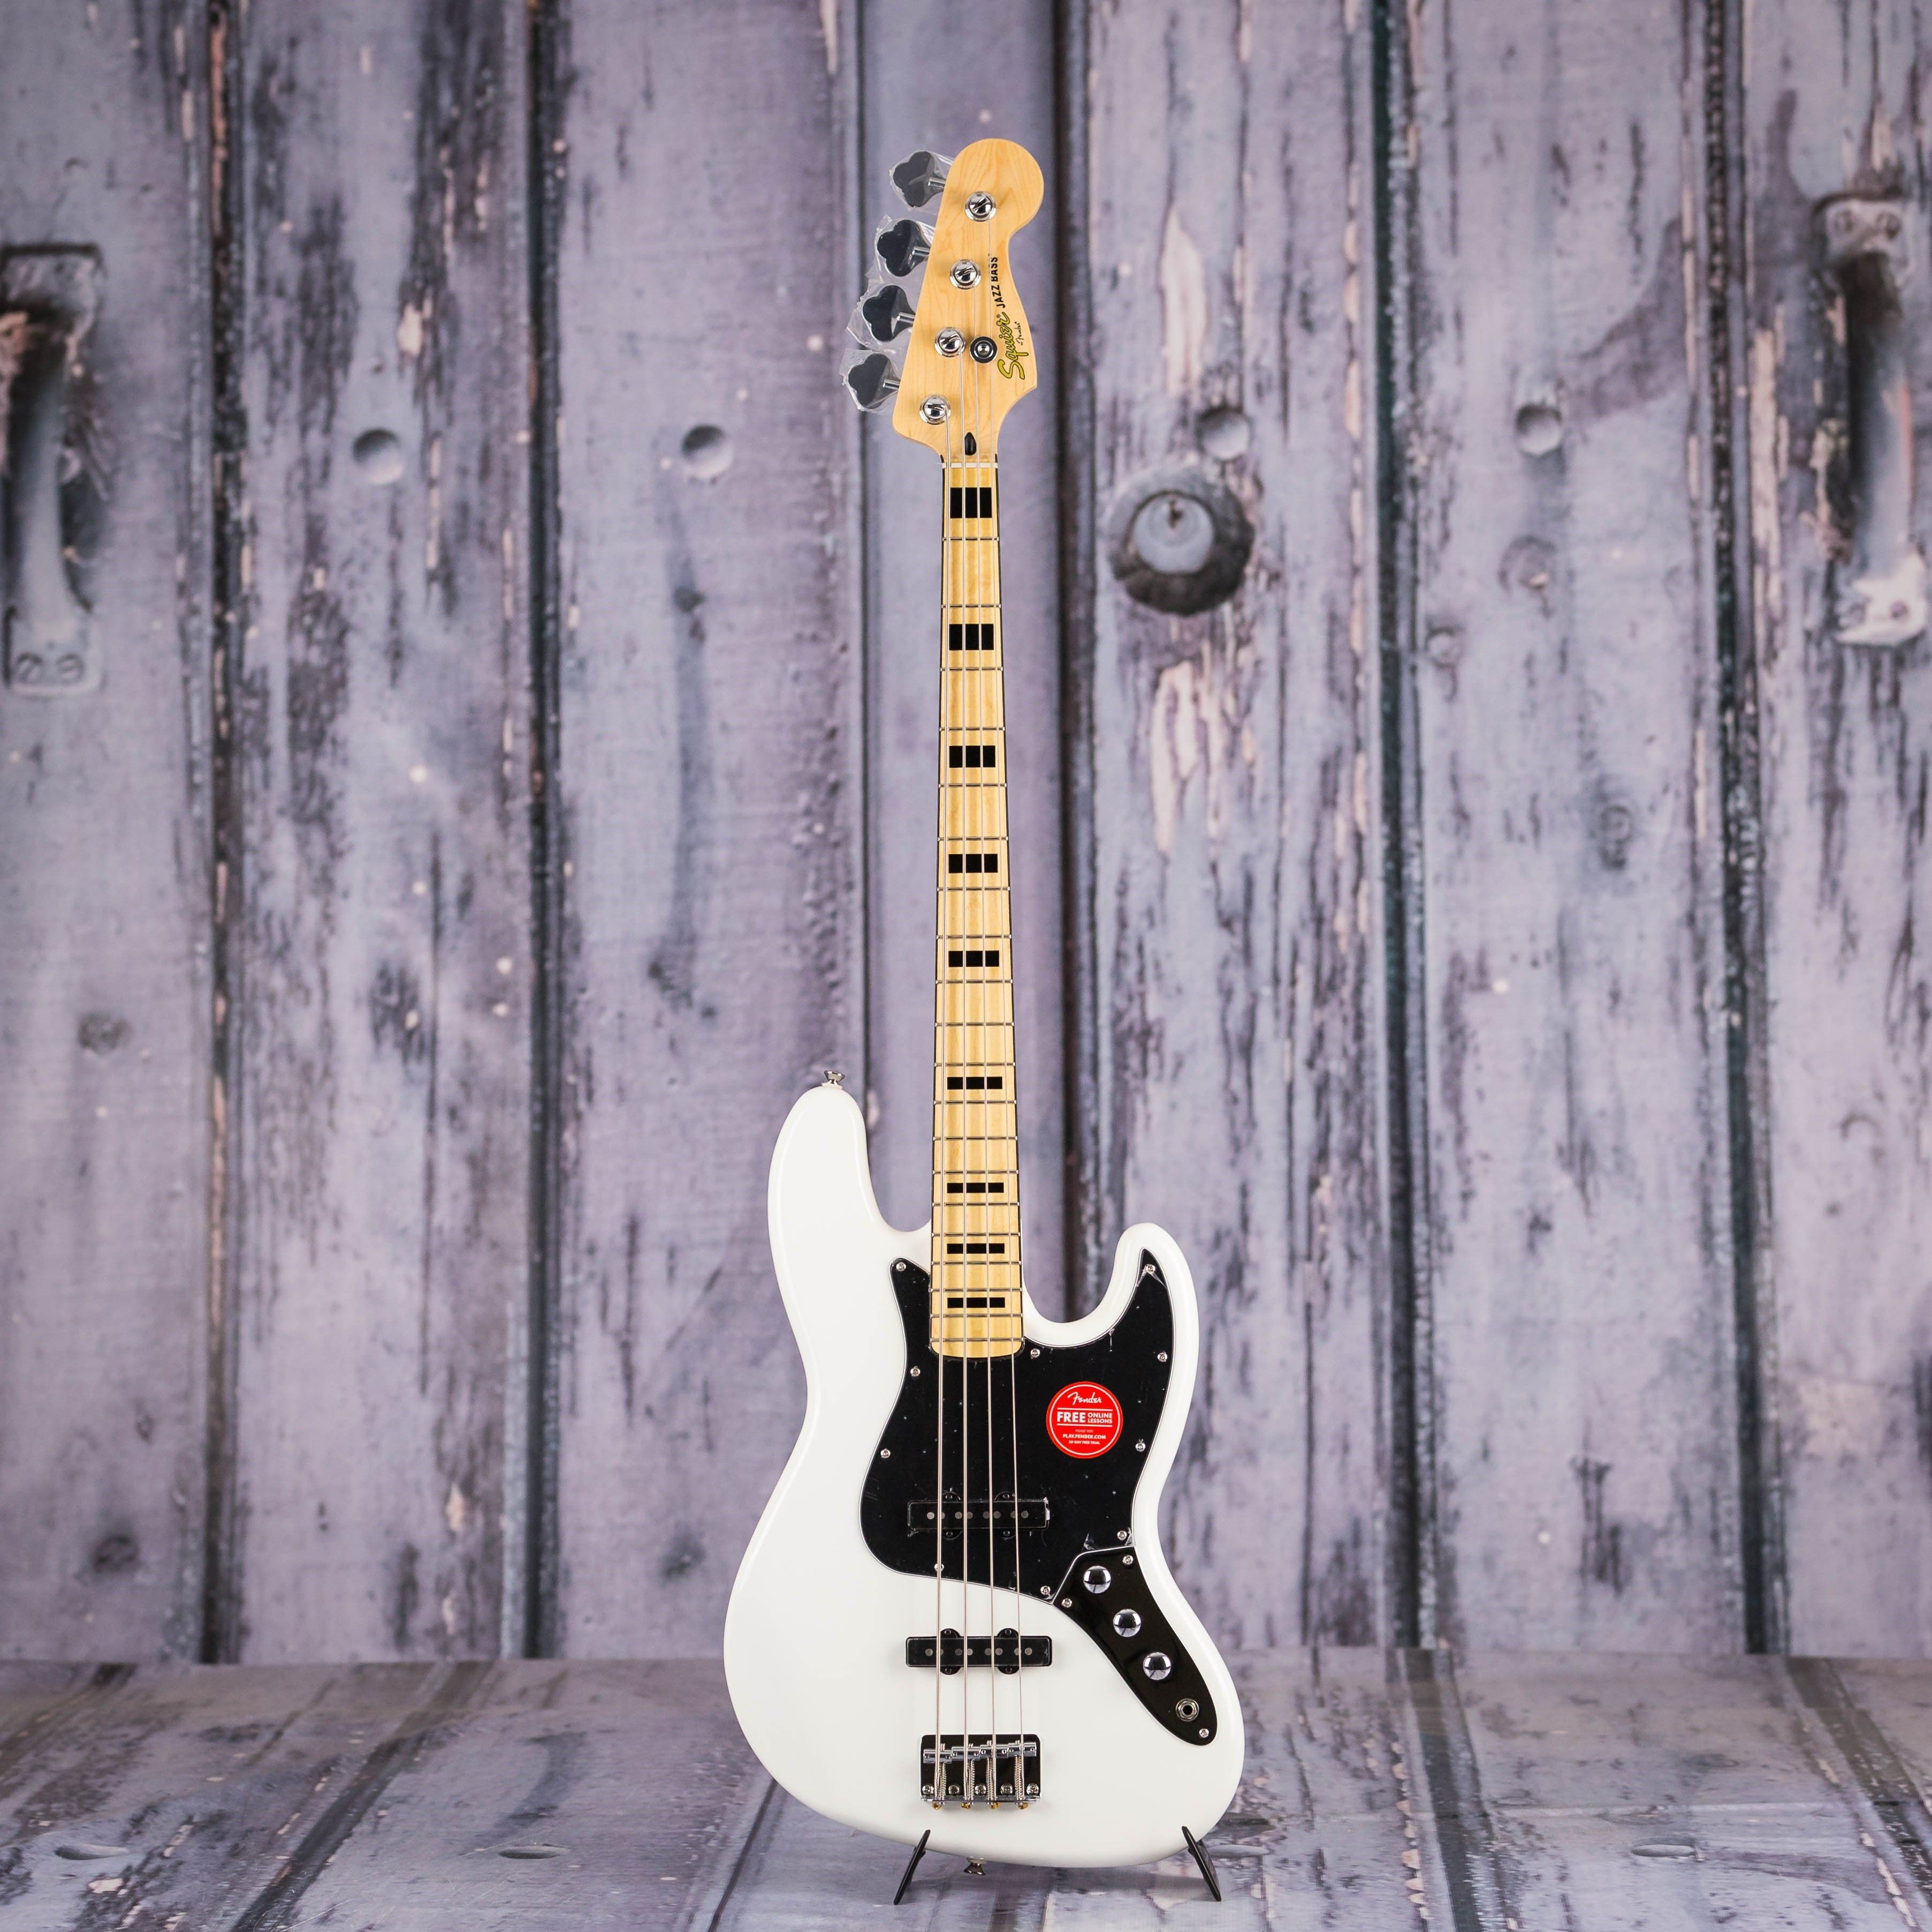 Squier Vintage Modified 70s Jazz Bass Olympic White Squier Music Stuff Vintage